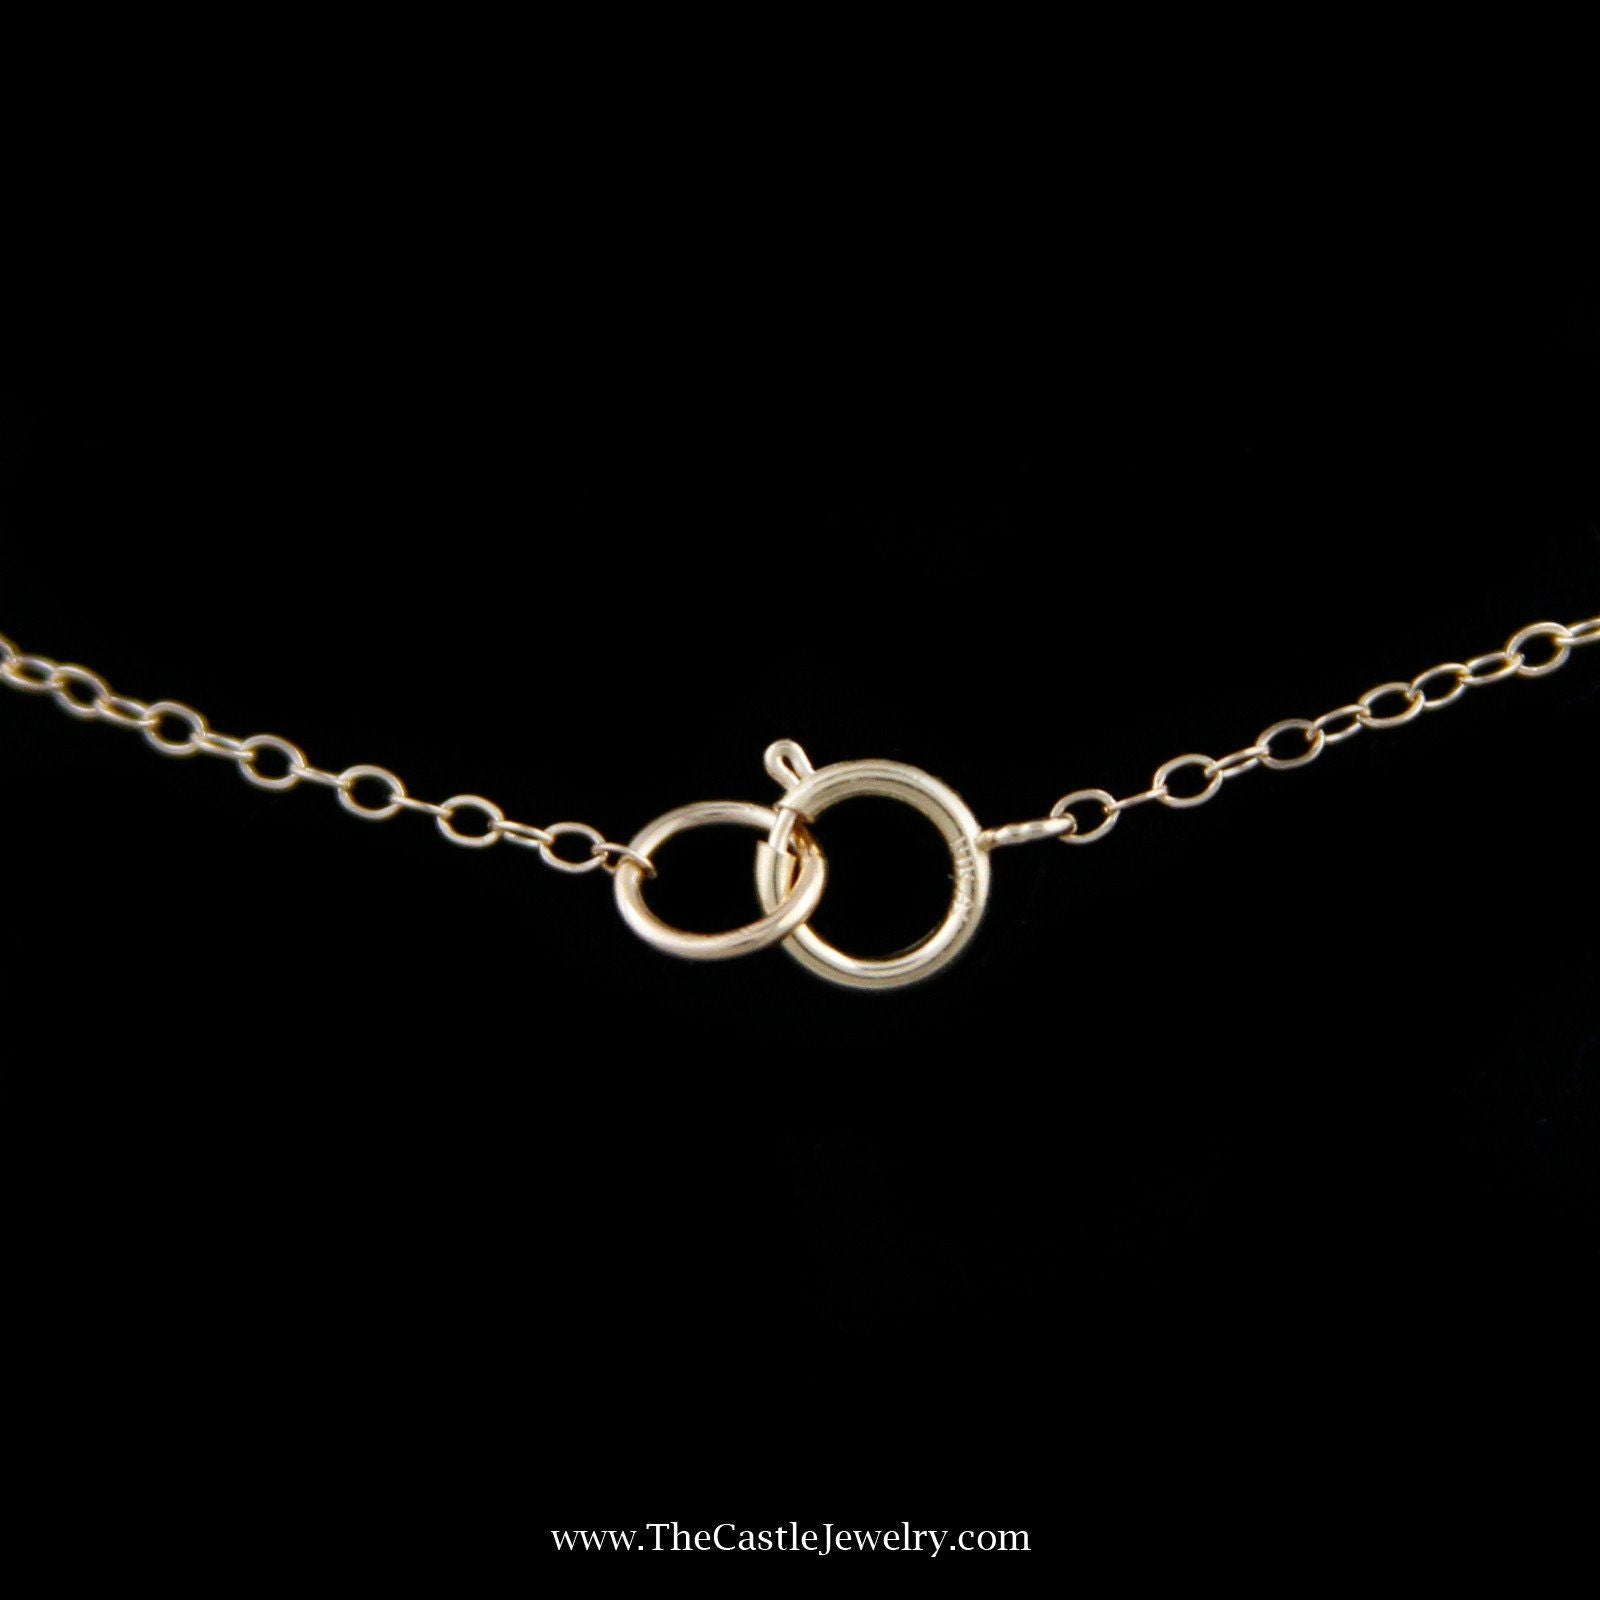 Freshwater Pearl & Cable Link Chain Adjustable Necklace Crafted in 14k Yellow Gold-1